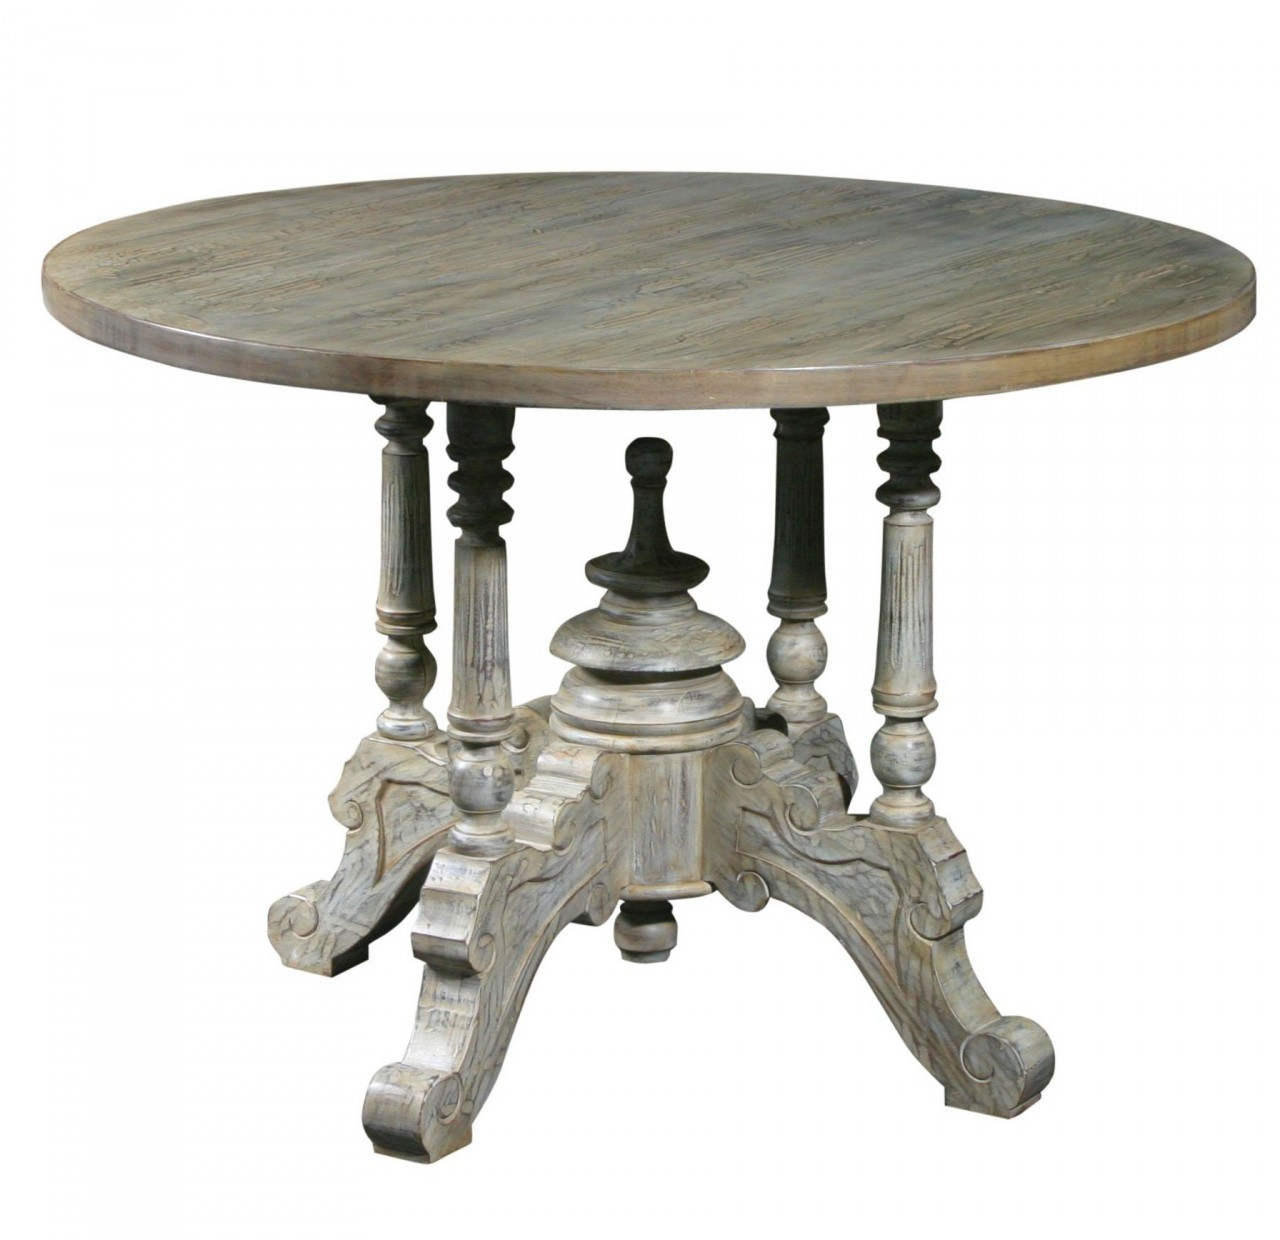 hayden round pedestal dining table 43 quot  18th century farmhouse round table and chairs farmhouse round table and chairs